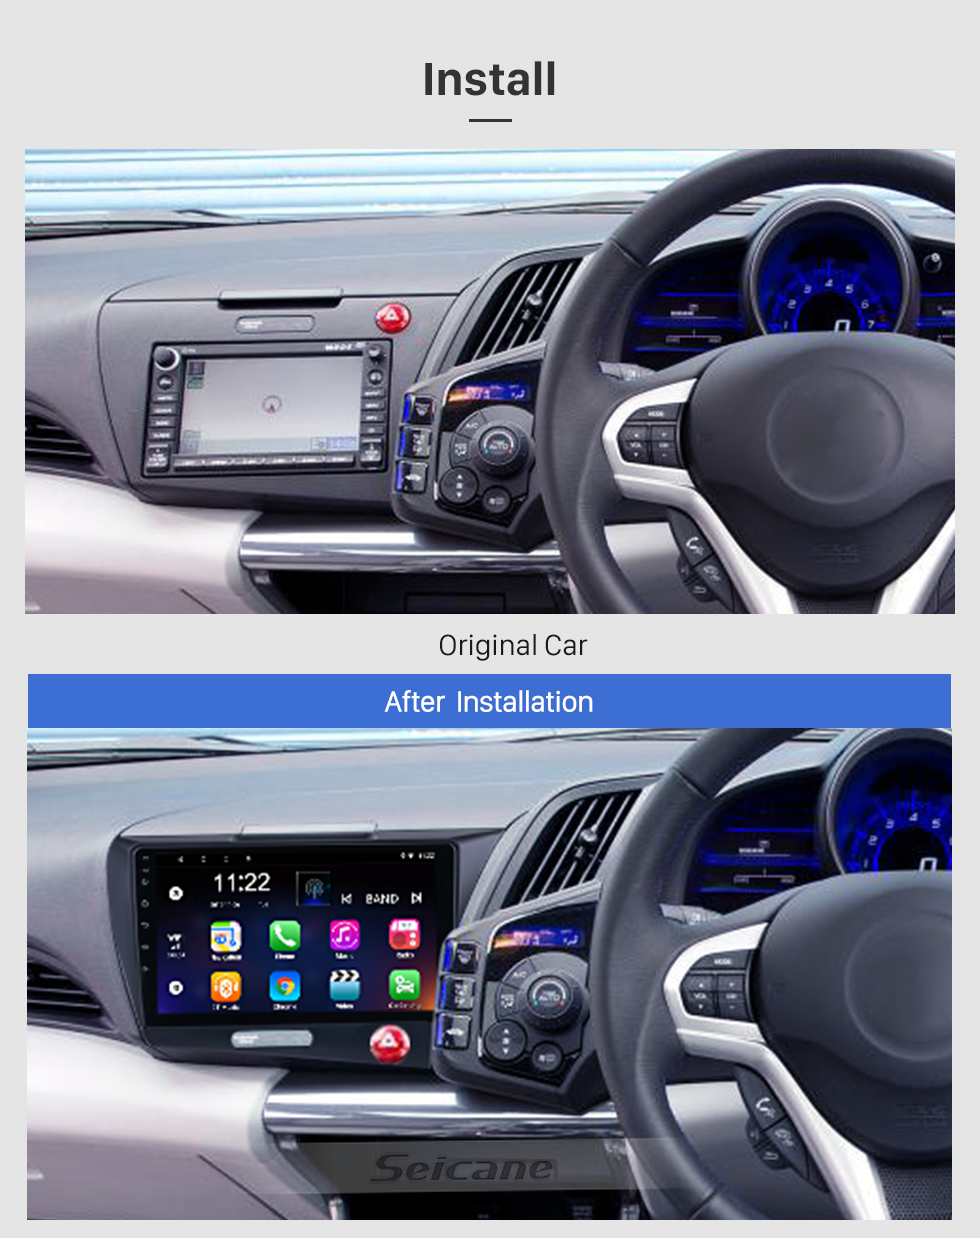 Seicane OEM 9 inch Android 10.0 for 2010 Honda CRZ RHD Radio with Bluetooth HD Touchscreen GPS Navigation System support Carplay TPMS